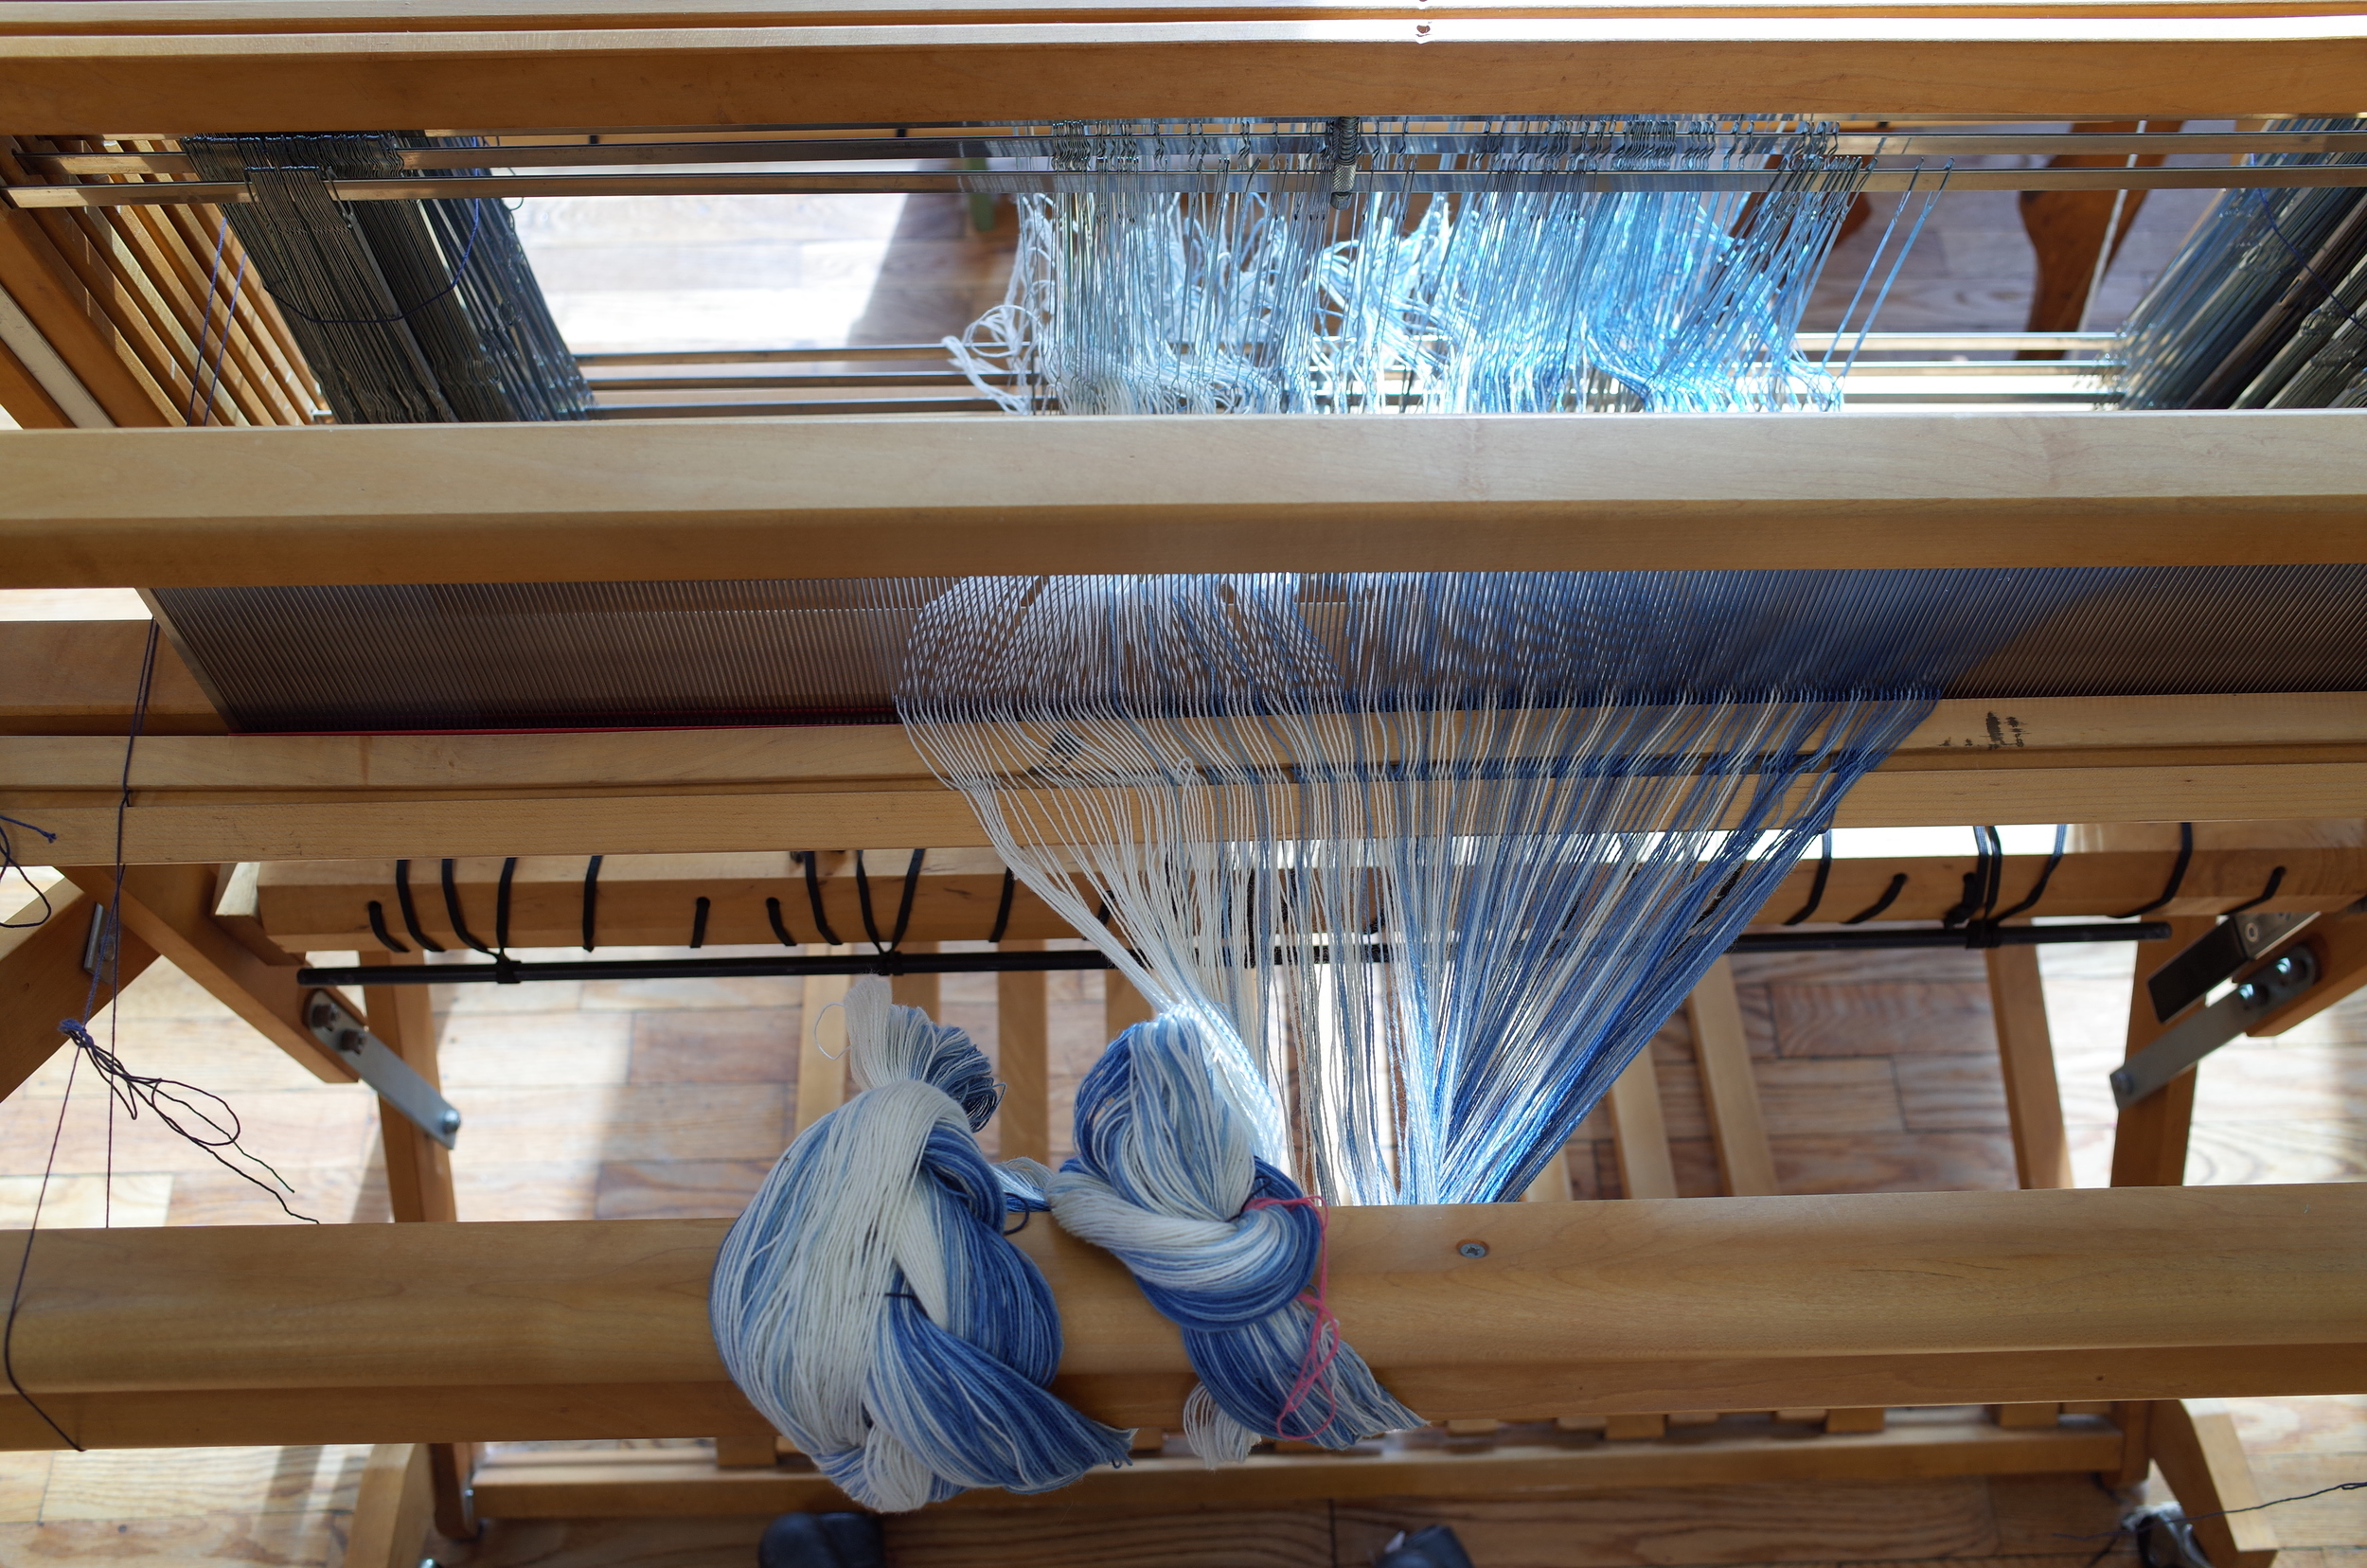 View of the threaded heddles and reed.